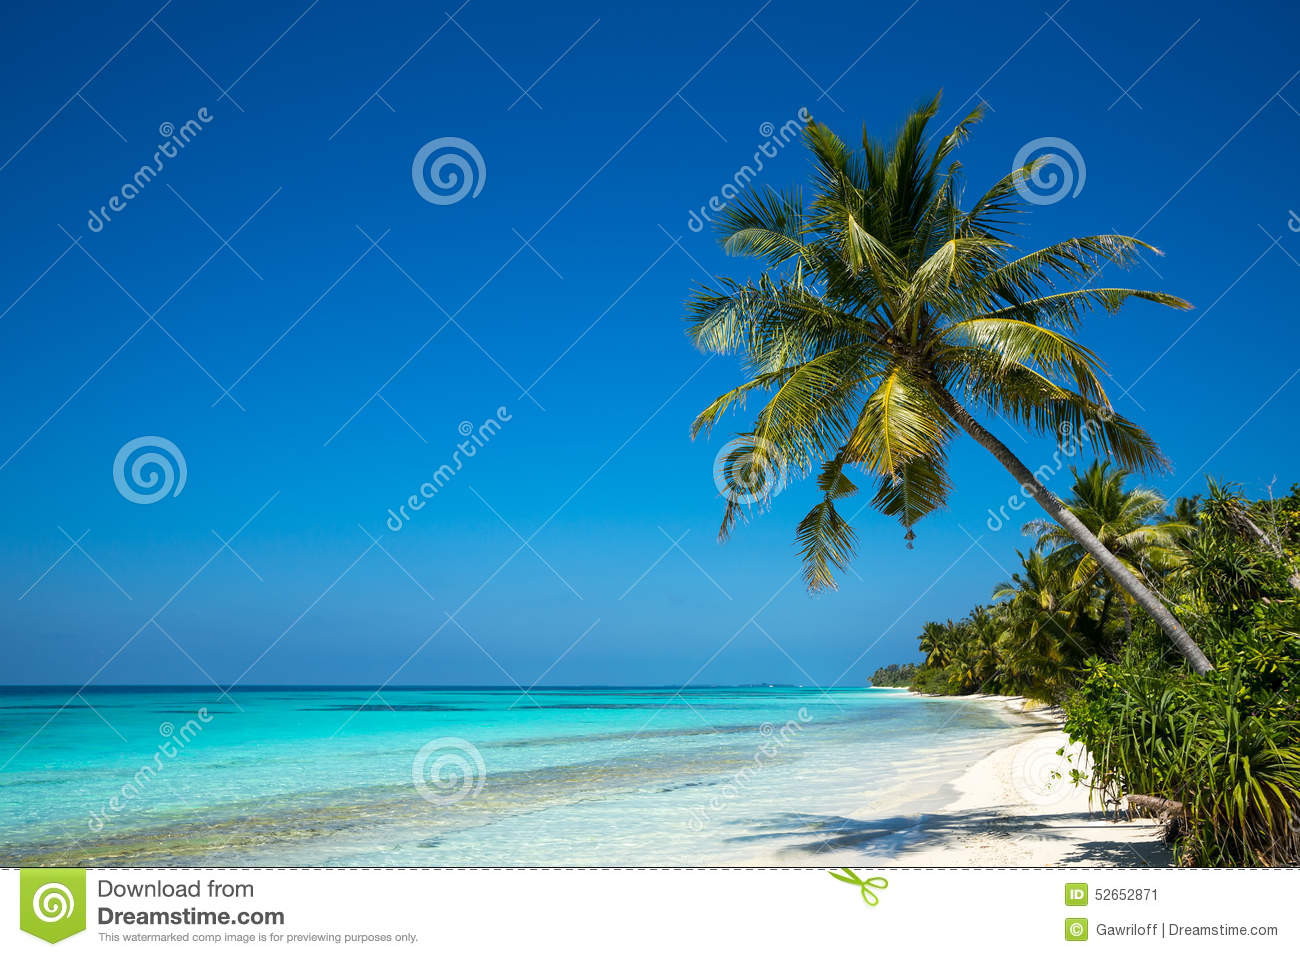 Perfect Tropical Island Paradise Beach And Old Boat Stock Image - Image of cloud, outdoors: 52652871